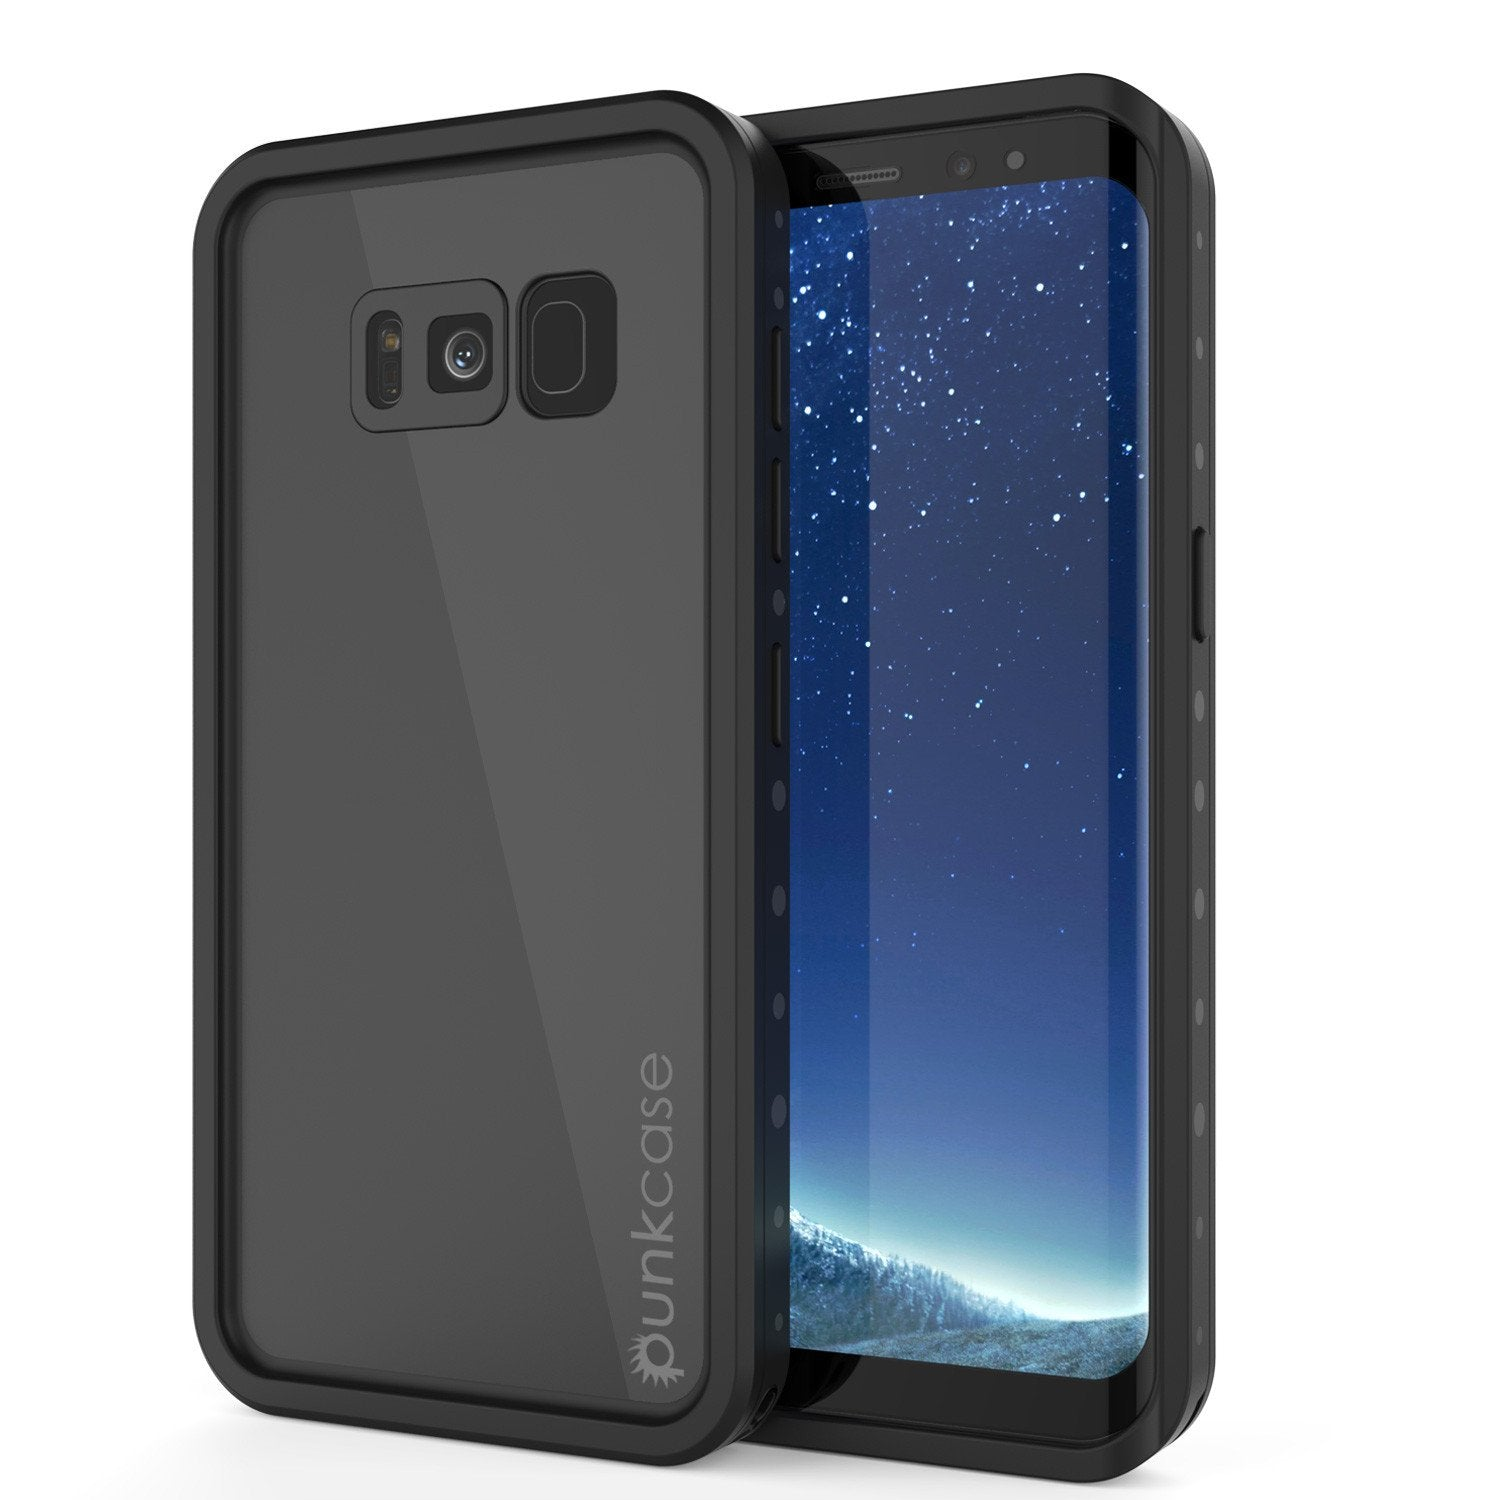 Galaxy S8 Waterproof Case PunkCase StudStar Black Thin 6.6ft Underwater IP68 Shock/Snow Proof